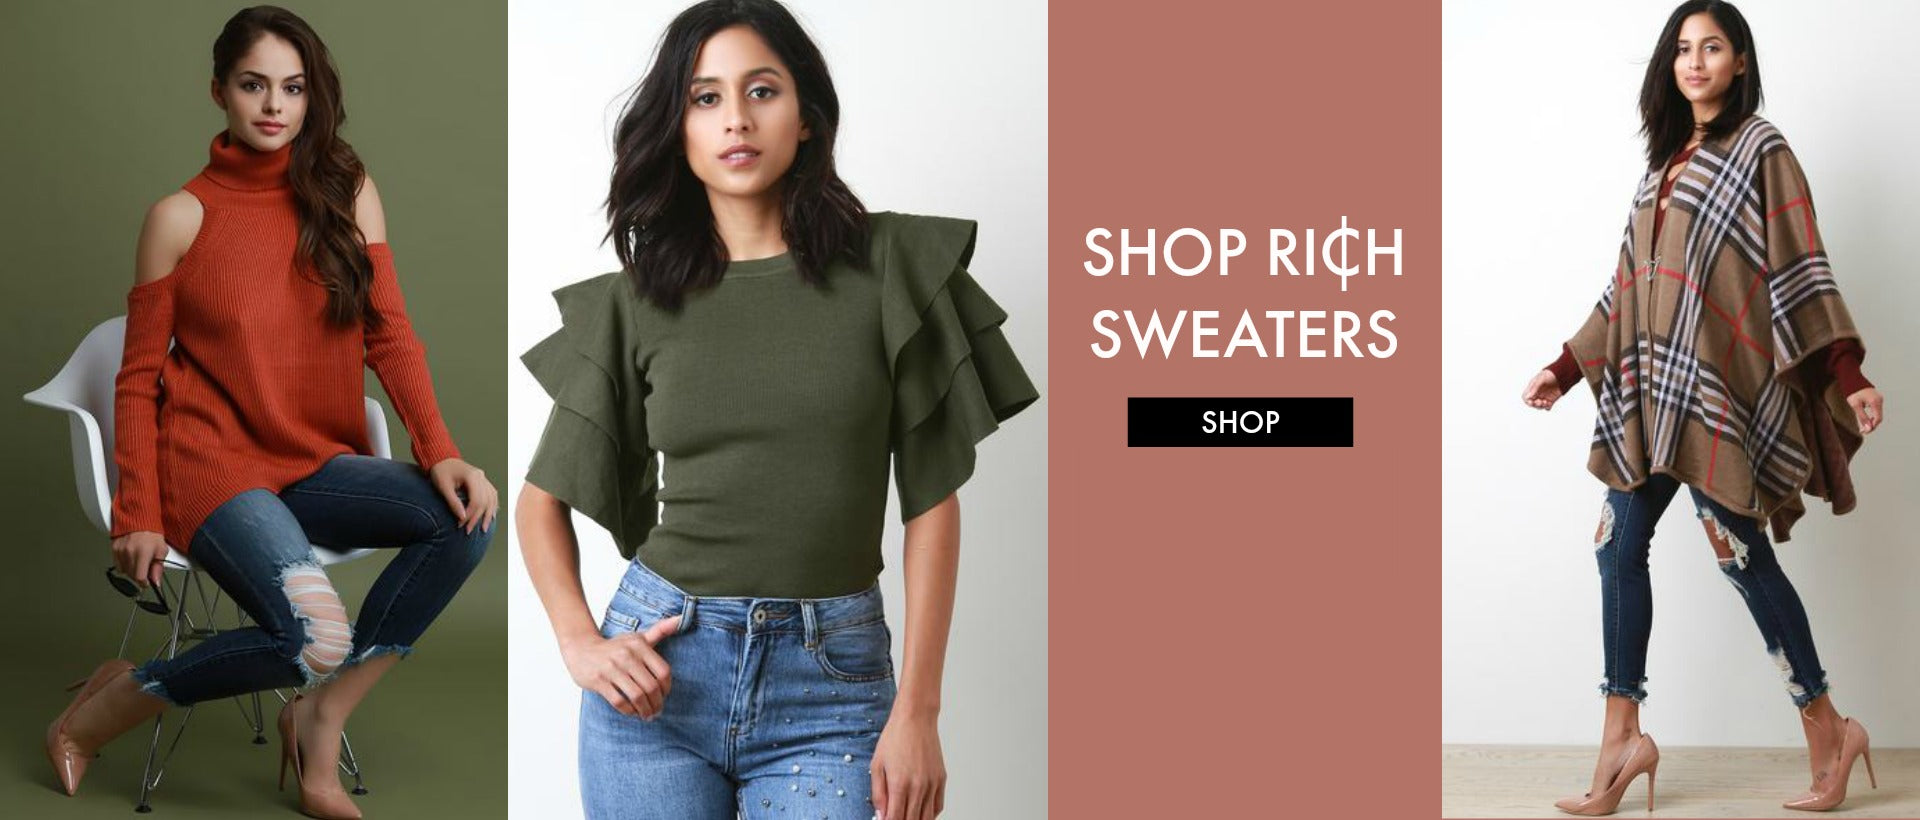 SWEATER TRENDS 2017 2018